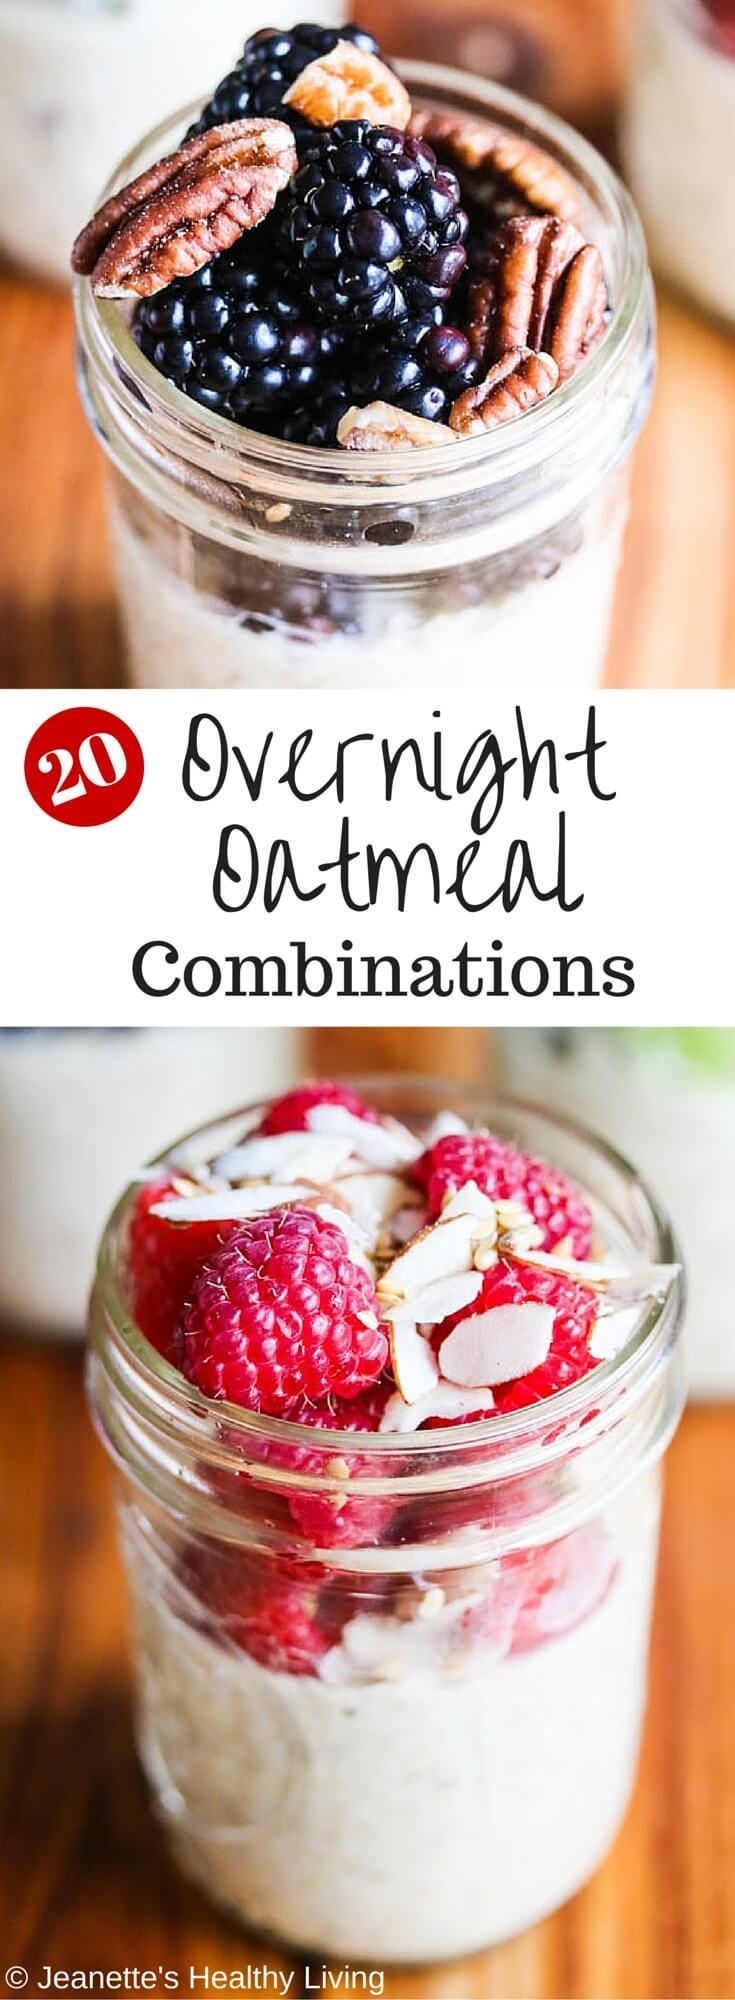 Twenty Healthy Overnight Oatmeal Recipe Combinations - these no-cook oatmeal in mason jars are a quick, healthy grab-and-go breakfast. Make a batch for the week and use any of these 20 recipe combinations. Nutrition facts included in this post. ~ http://jeanetteshealthyliving.com #ad @lovemysilk